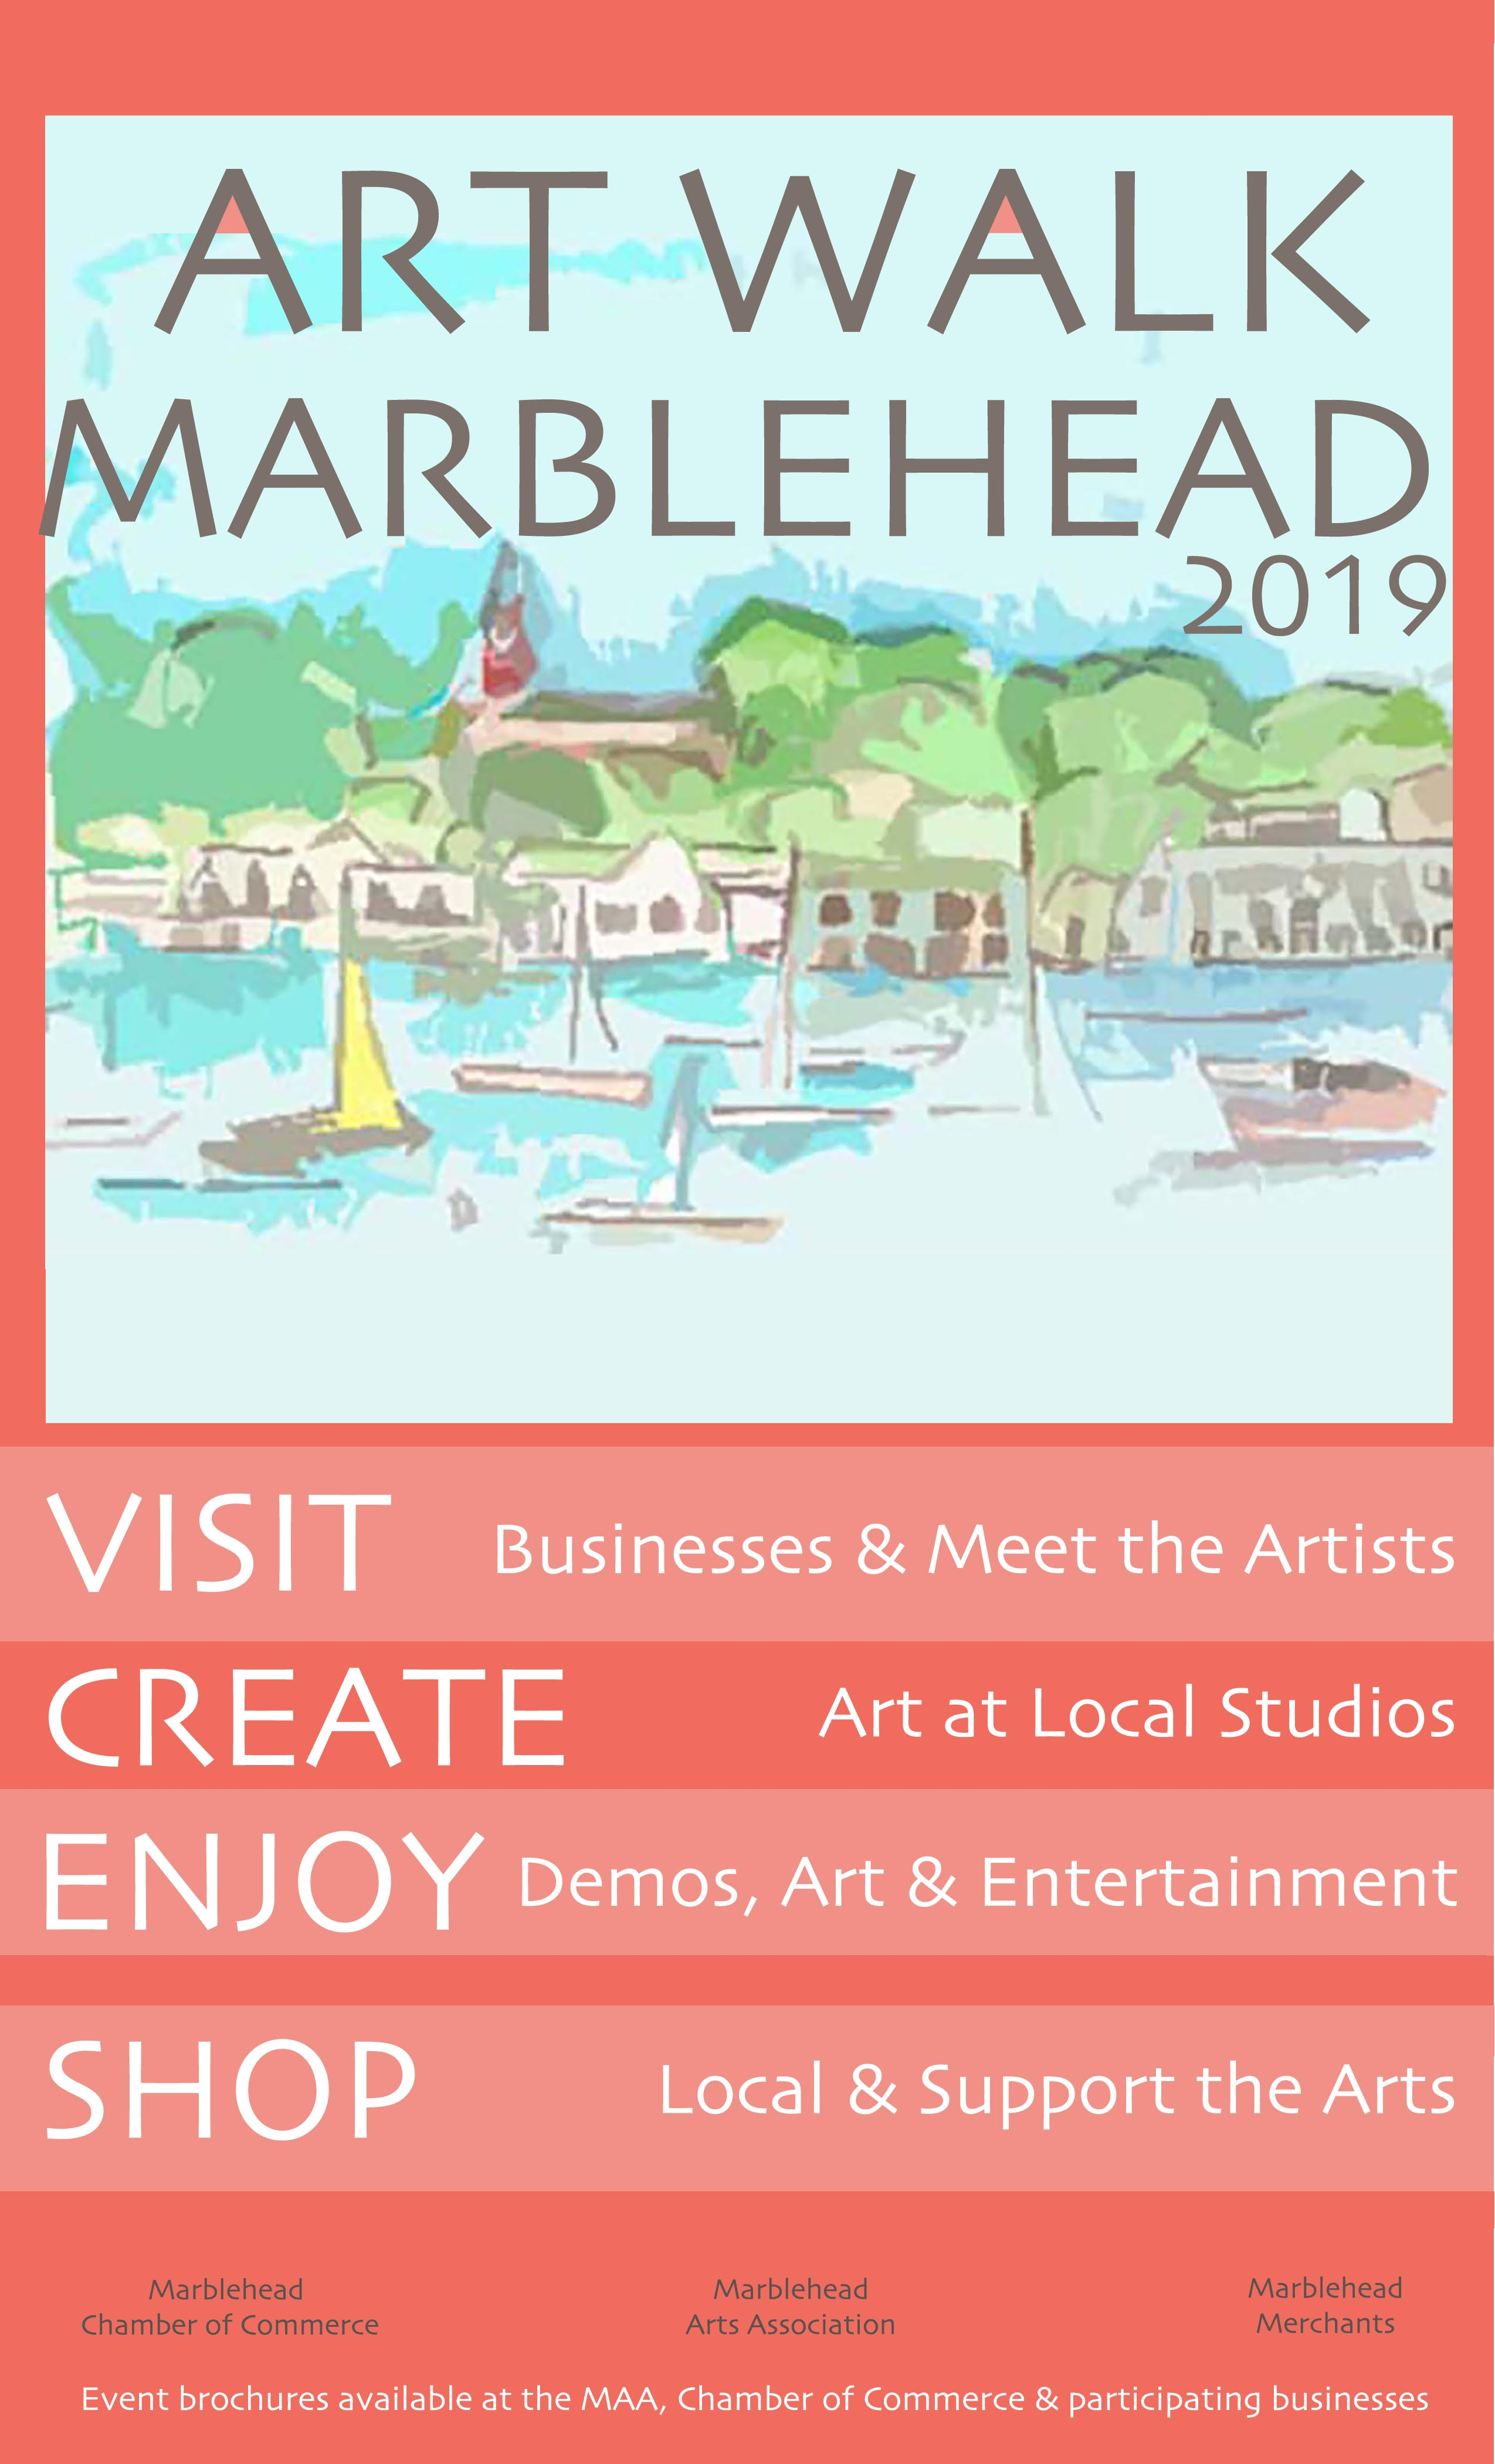 Marblehead ArtWalk 2019 - May 18 & 19, 2019